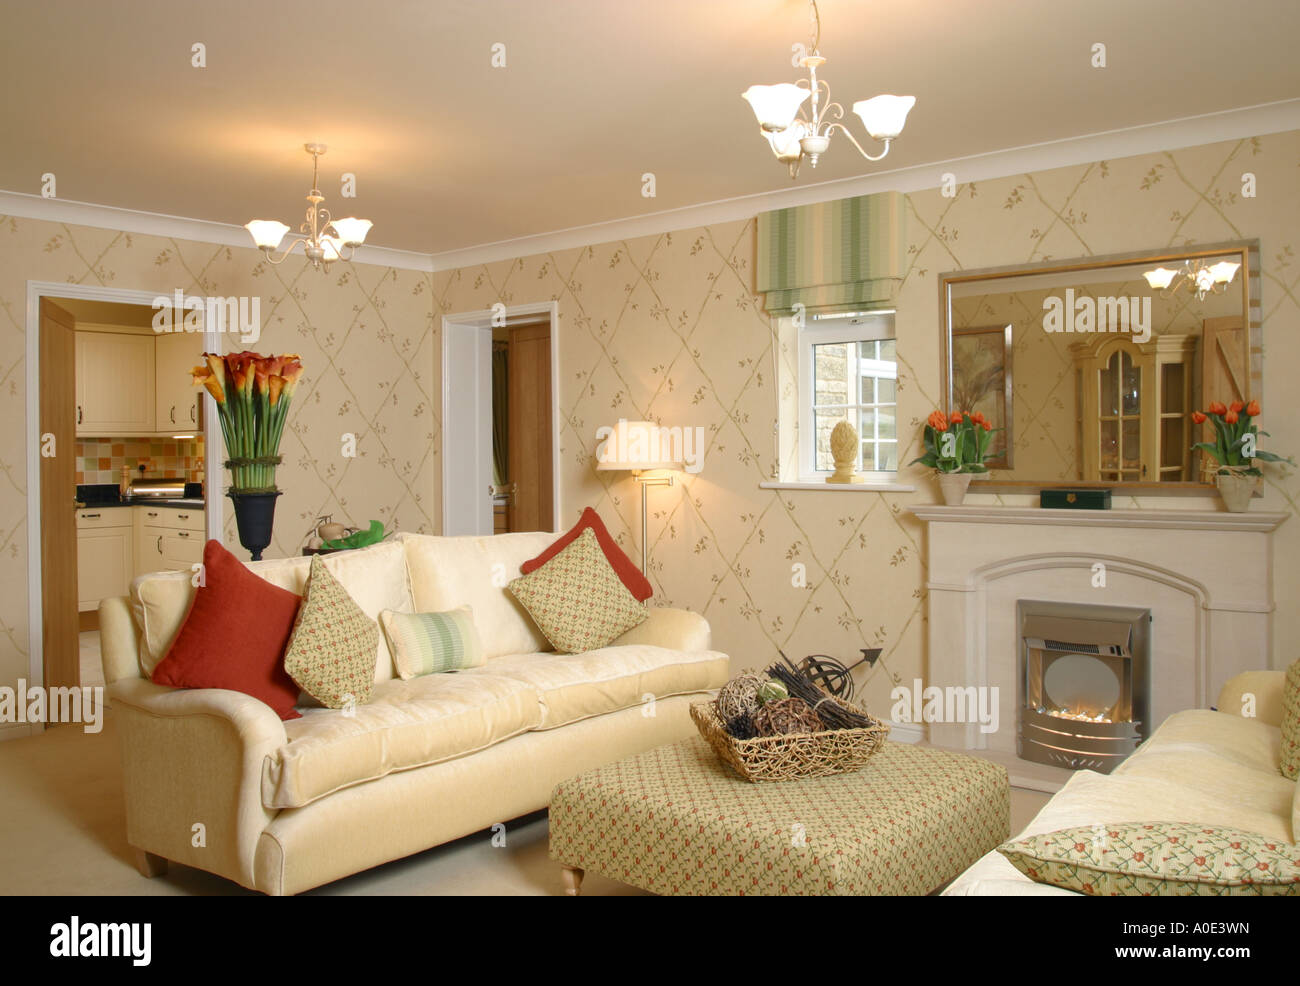 UK showhome interior furnished living room Stock Photo 9967520 Alamy